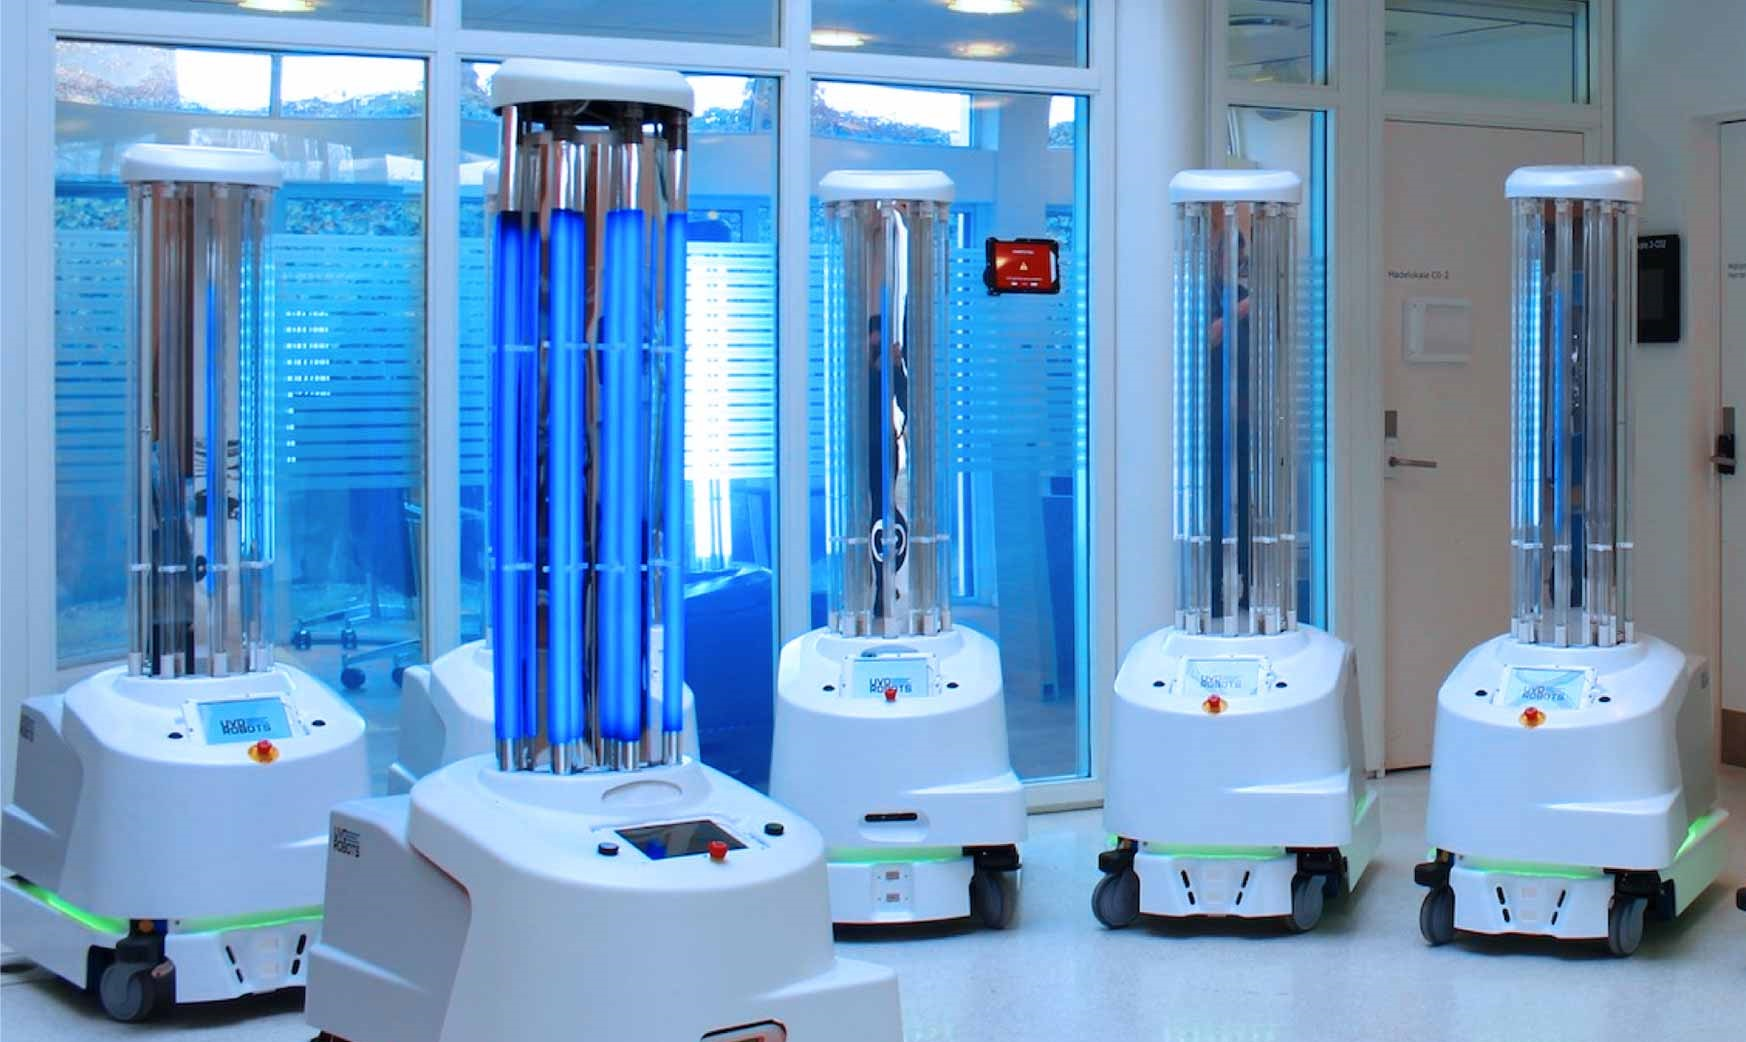 Cleaning And Disinfection Robots